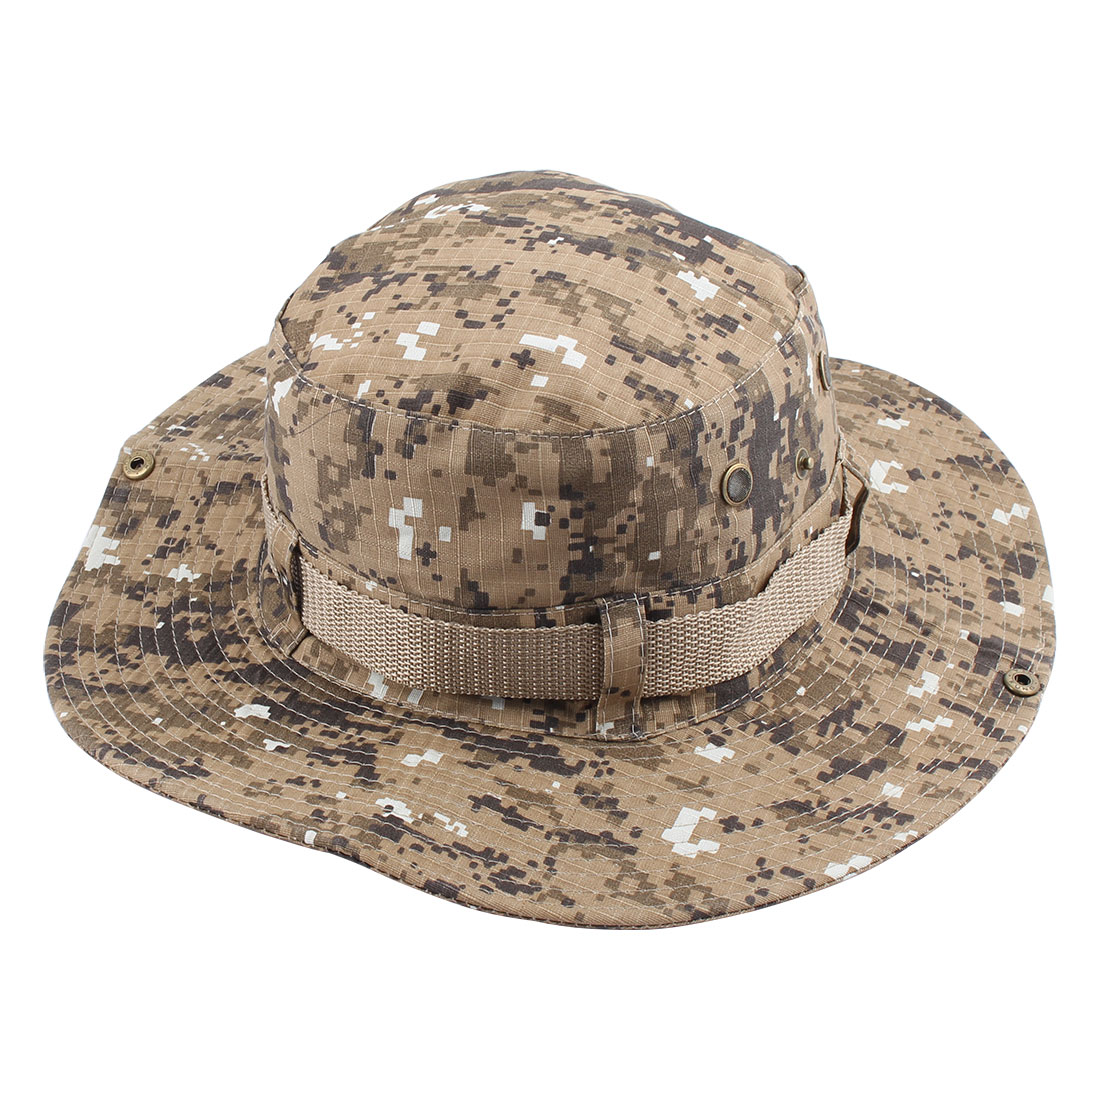 Fisherman Unisex Outdoor Fishing Hiking Hunting Wide Brim Summer Sun Protective Camouflage Cap Bucket Hat #1